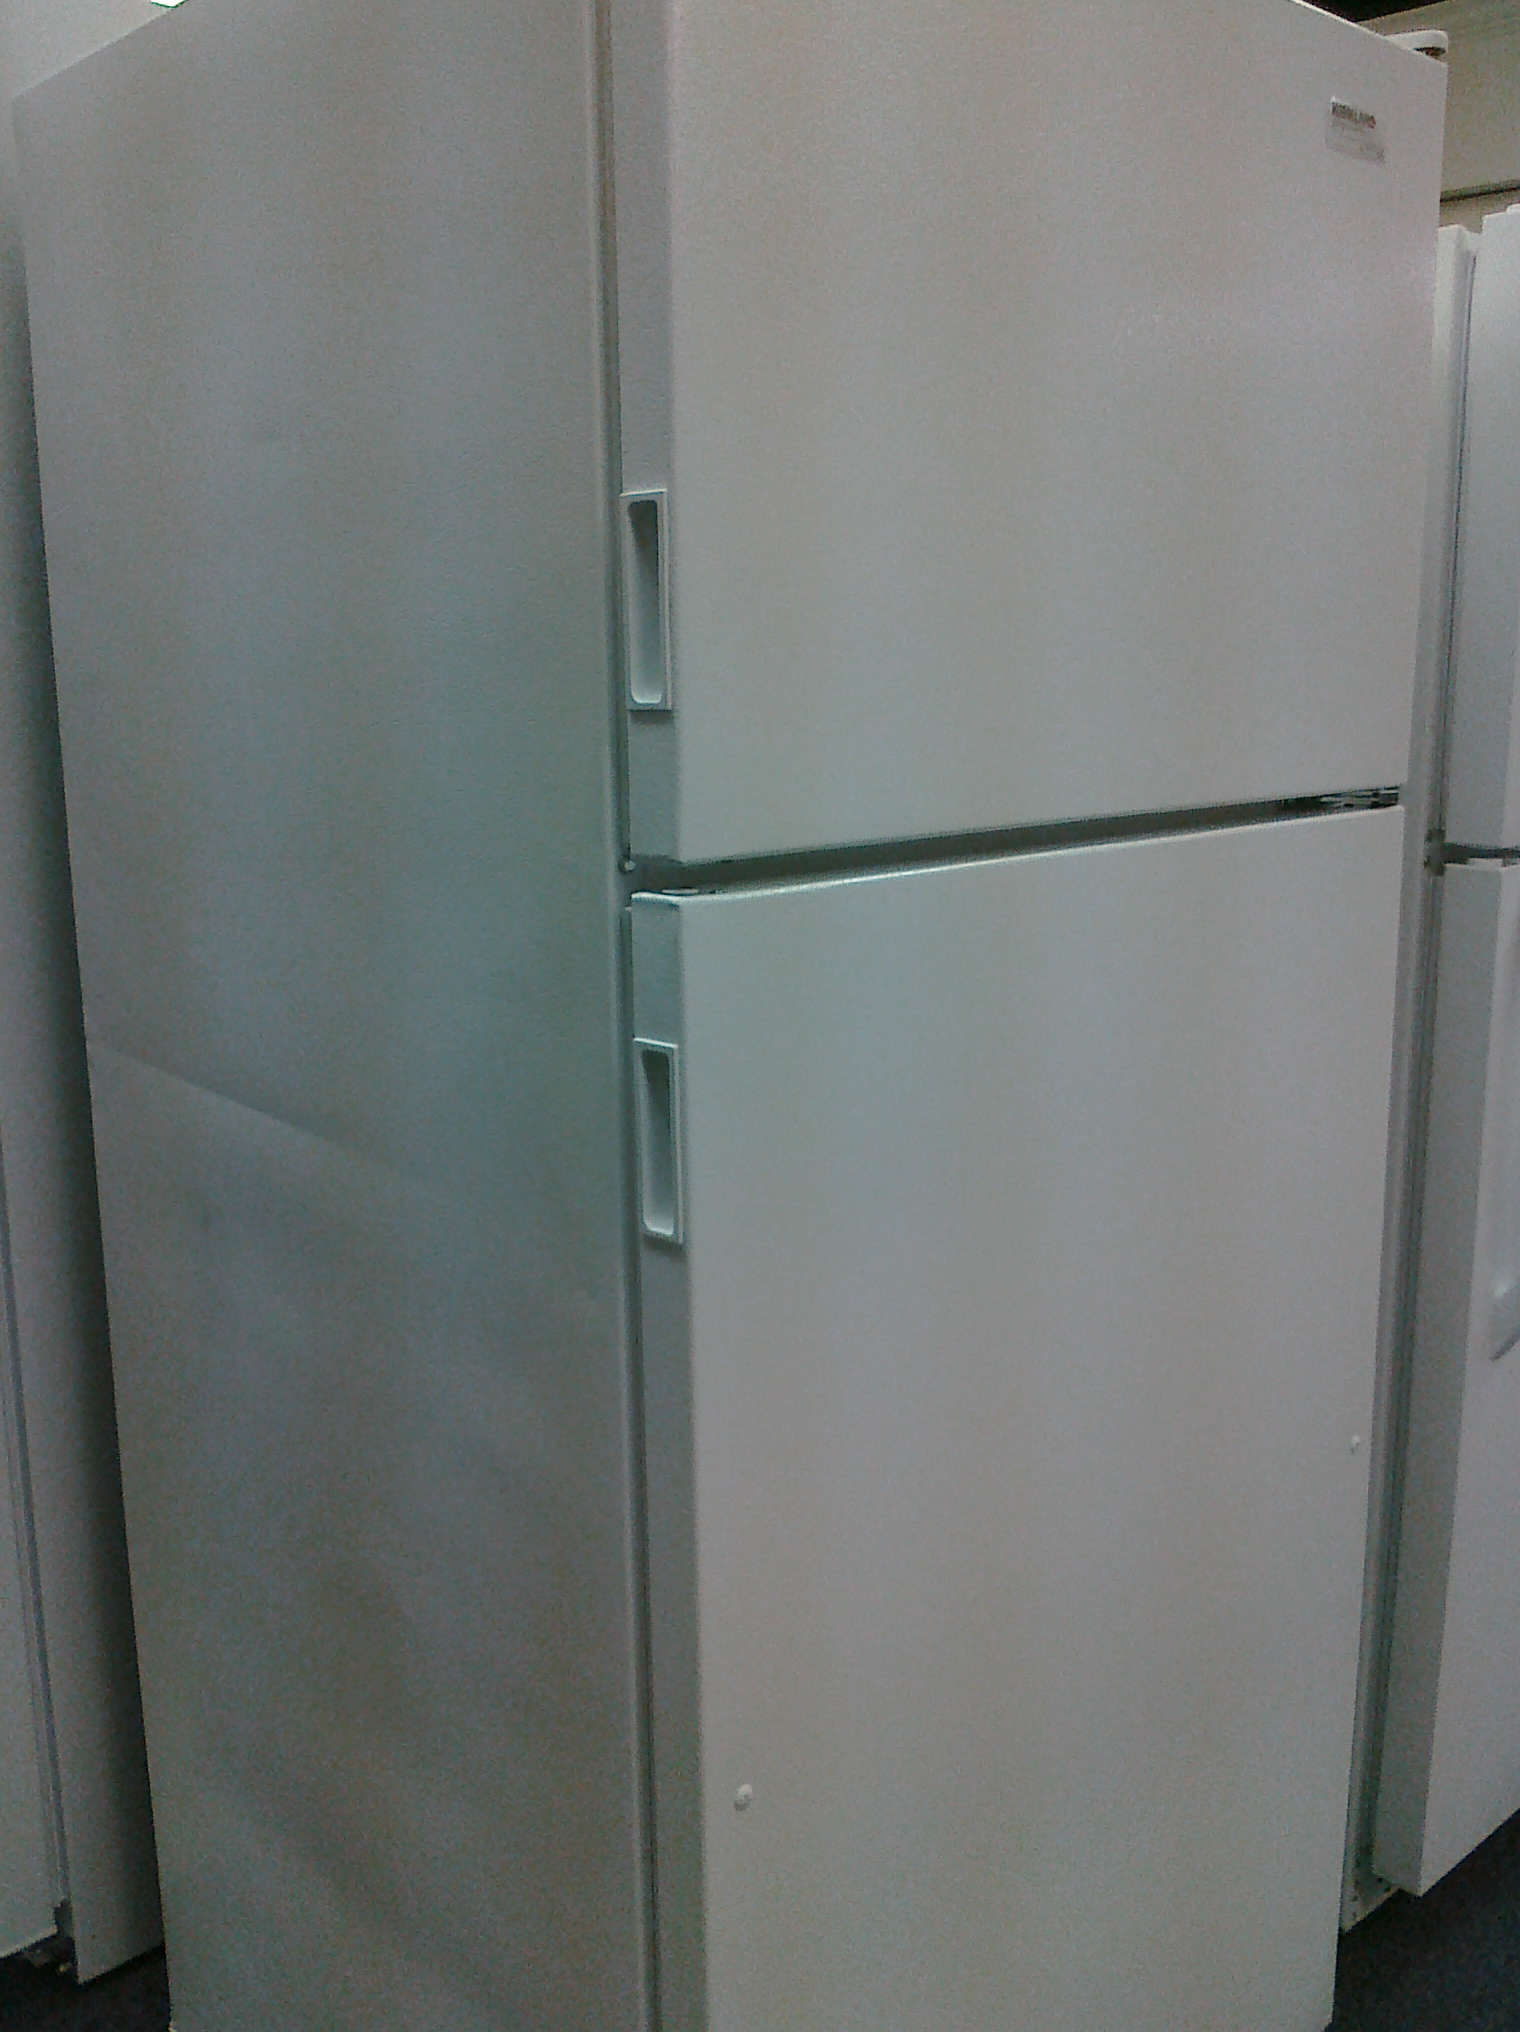 9 Kirkland By Whirlpool St14ckxsq 14 Cubic Foot Top